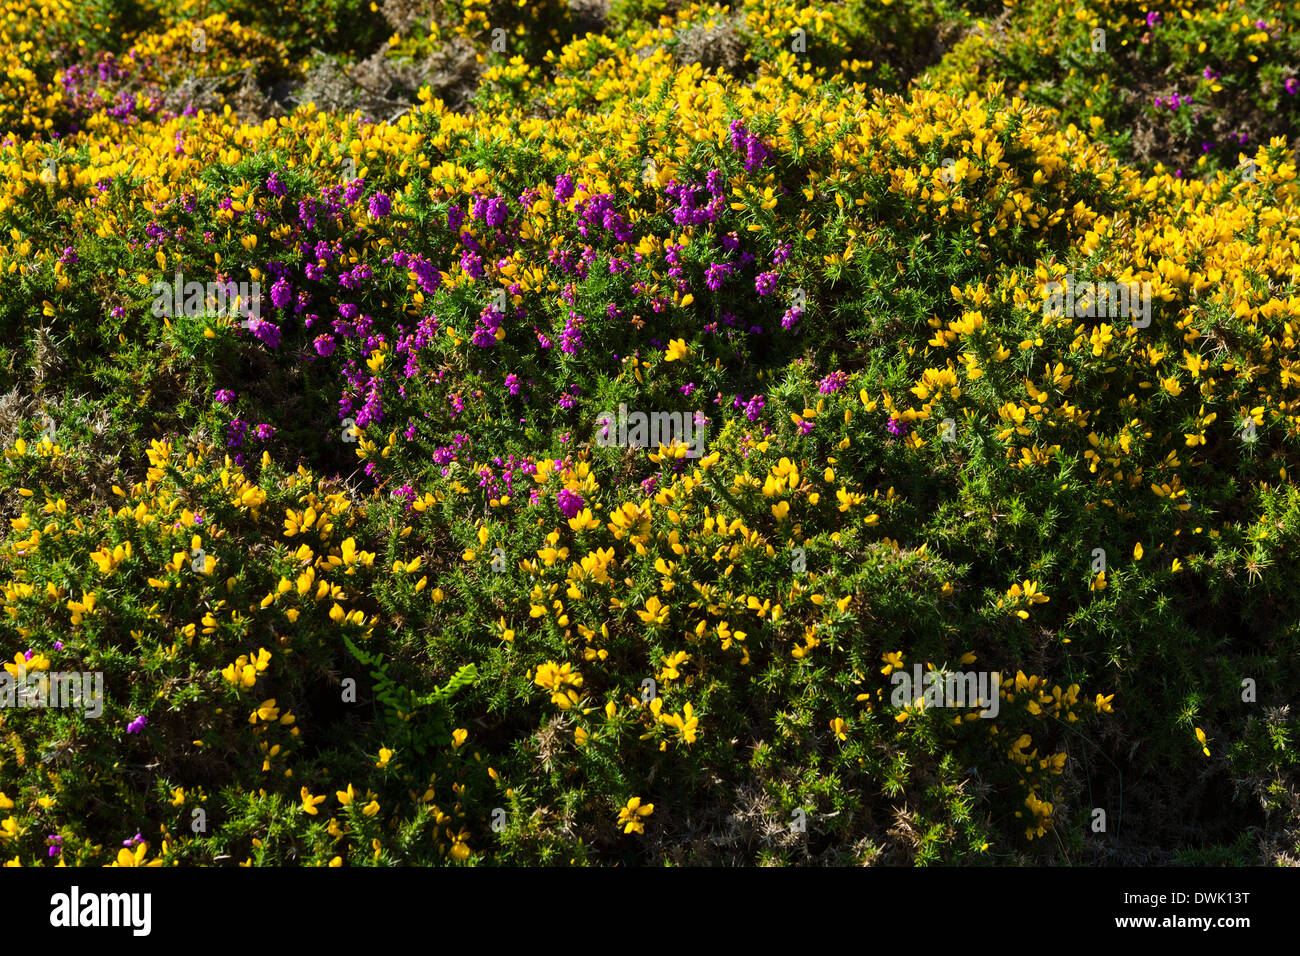 Gorse and heather on the hillside, The Great Orme, Llandudno, Conwy, North Wales, UK - Stock Image